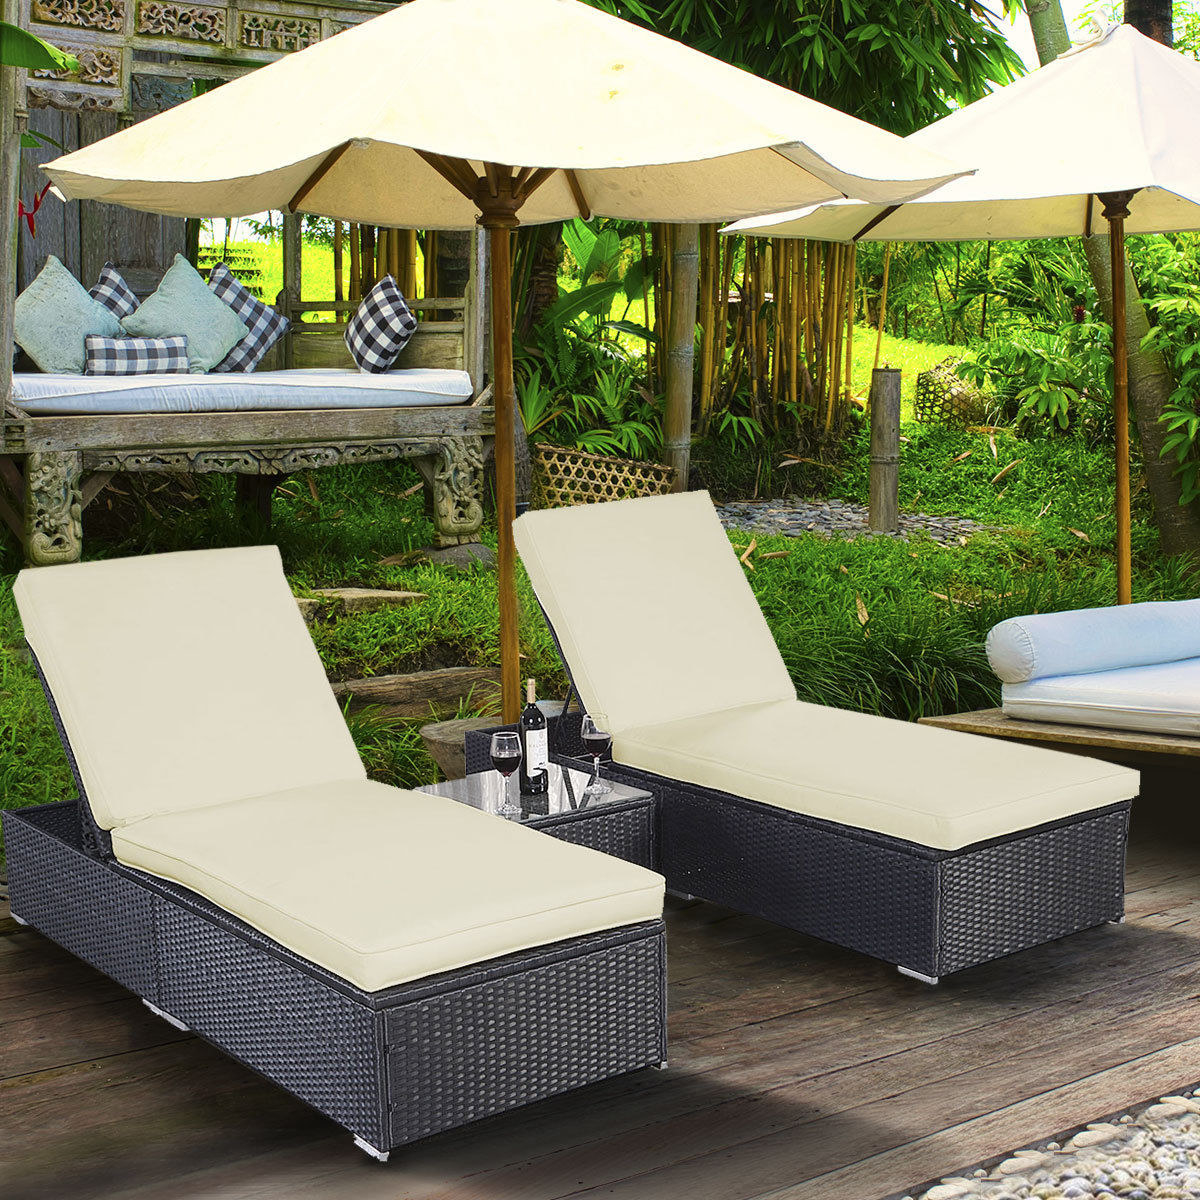 Best Furniture Buy: 25 Of The Best Places To Buy Outdoor Furniture